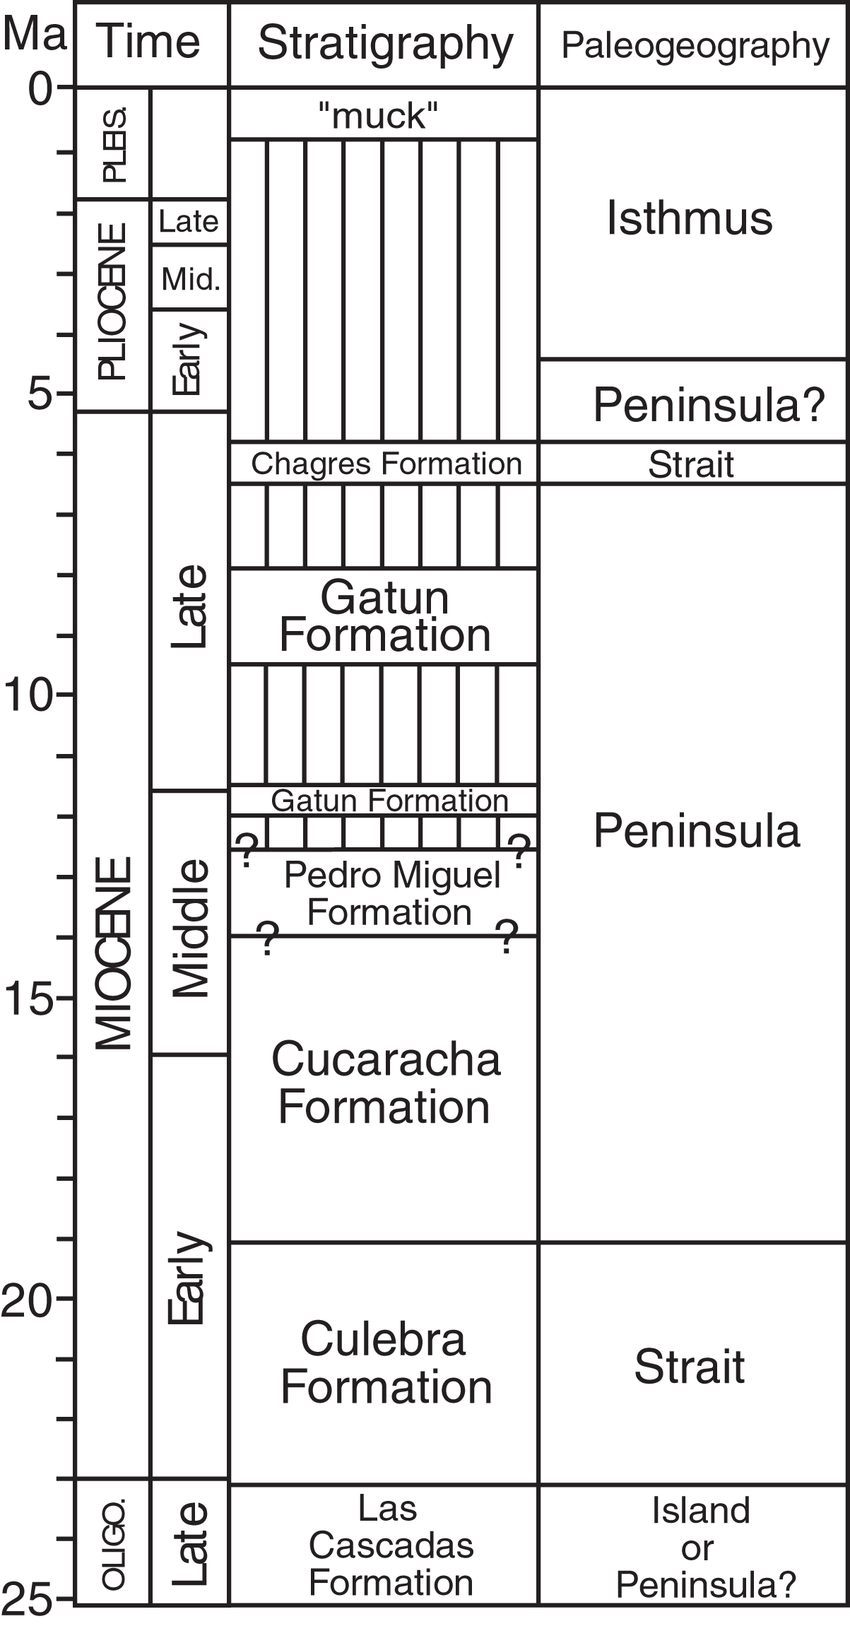 hight resolution of geologic history of the panama canal basin showing geologic time stratigraphy and paleogeography